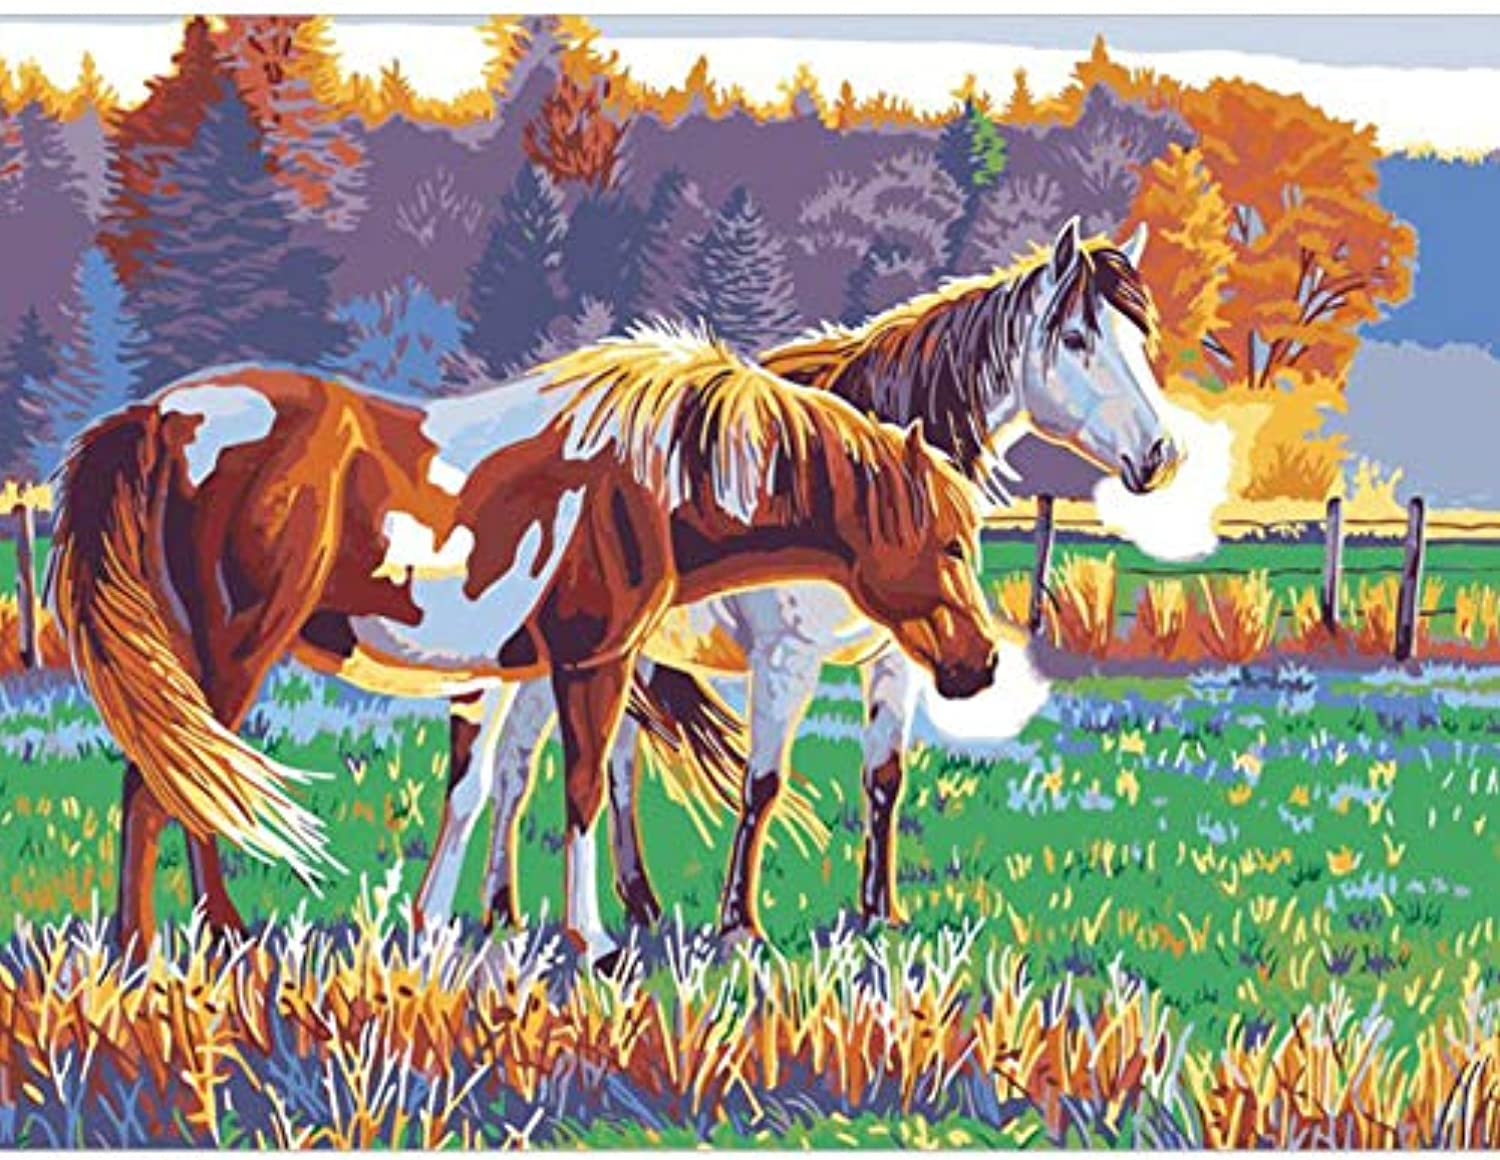 Jigsaw Puzzle 1000 Piece 3D Puzzle Animal Horse DIY Kits for Wall Art Picture for Living Room 75X50Cm